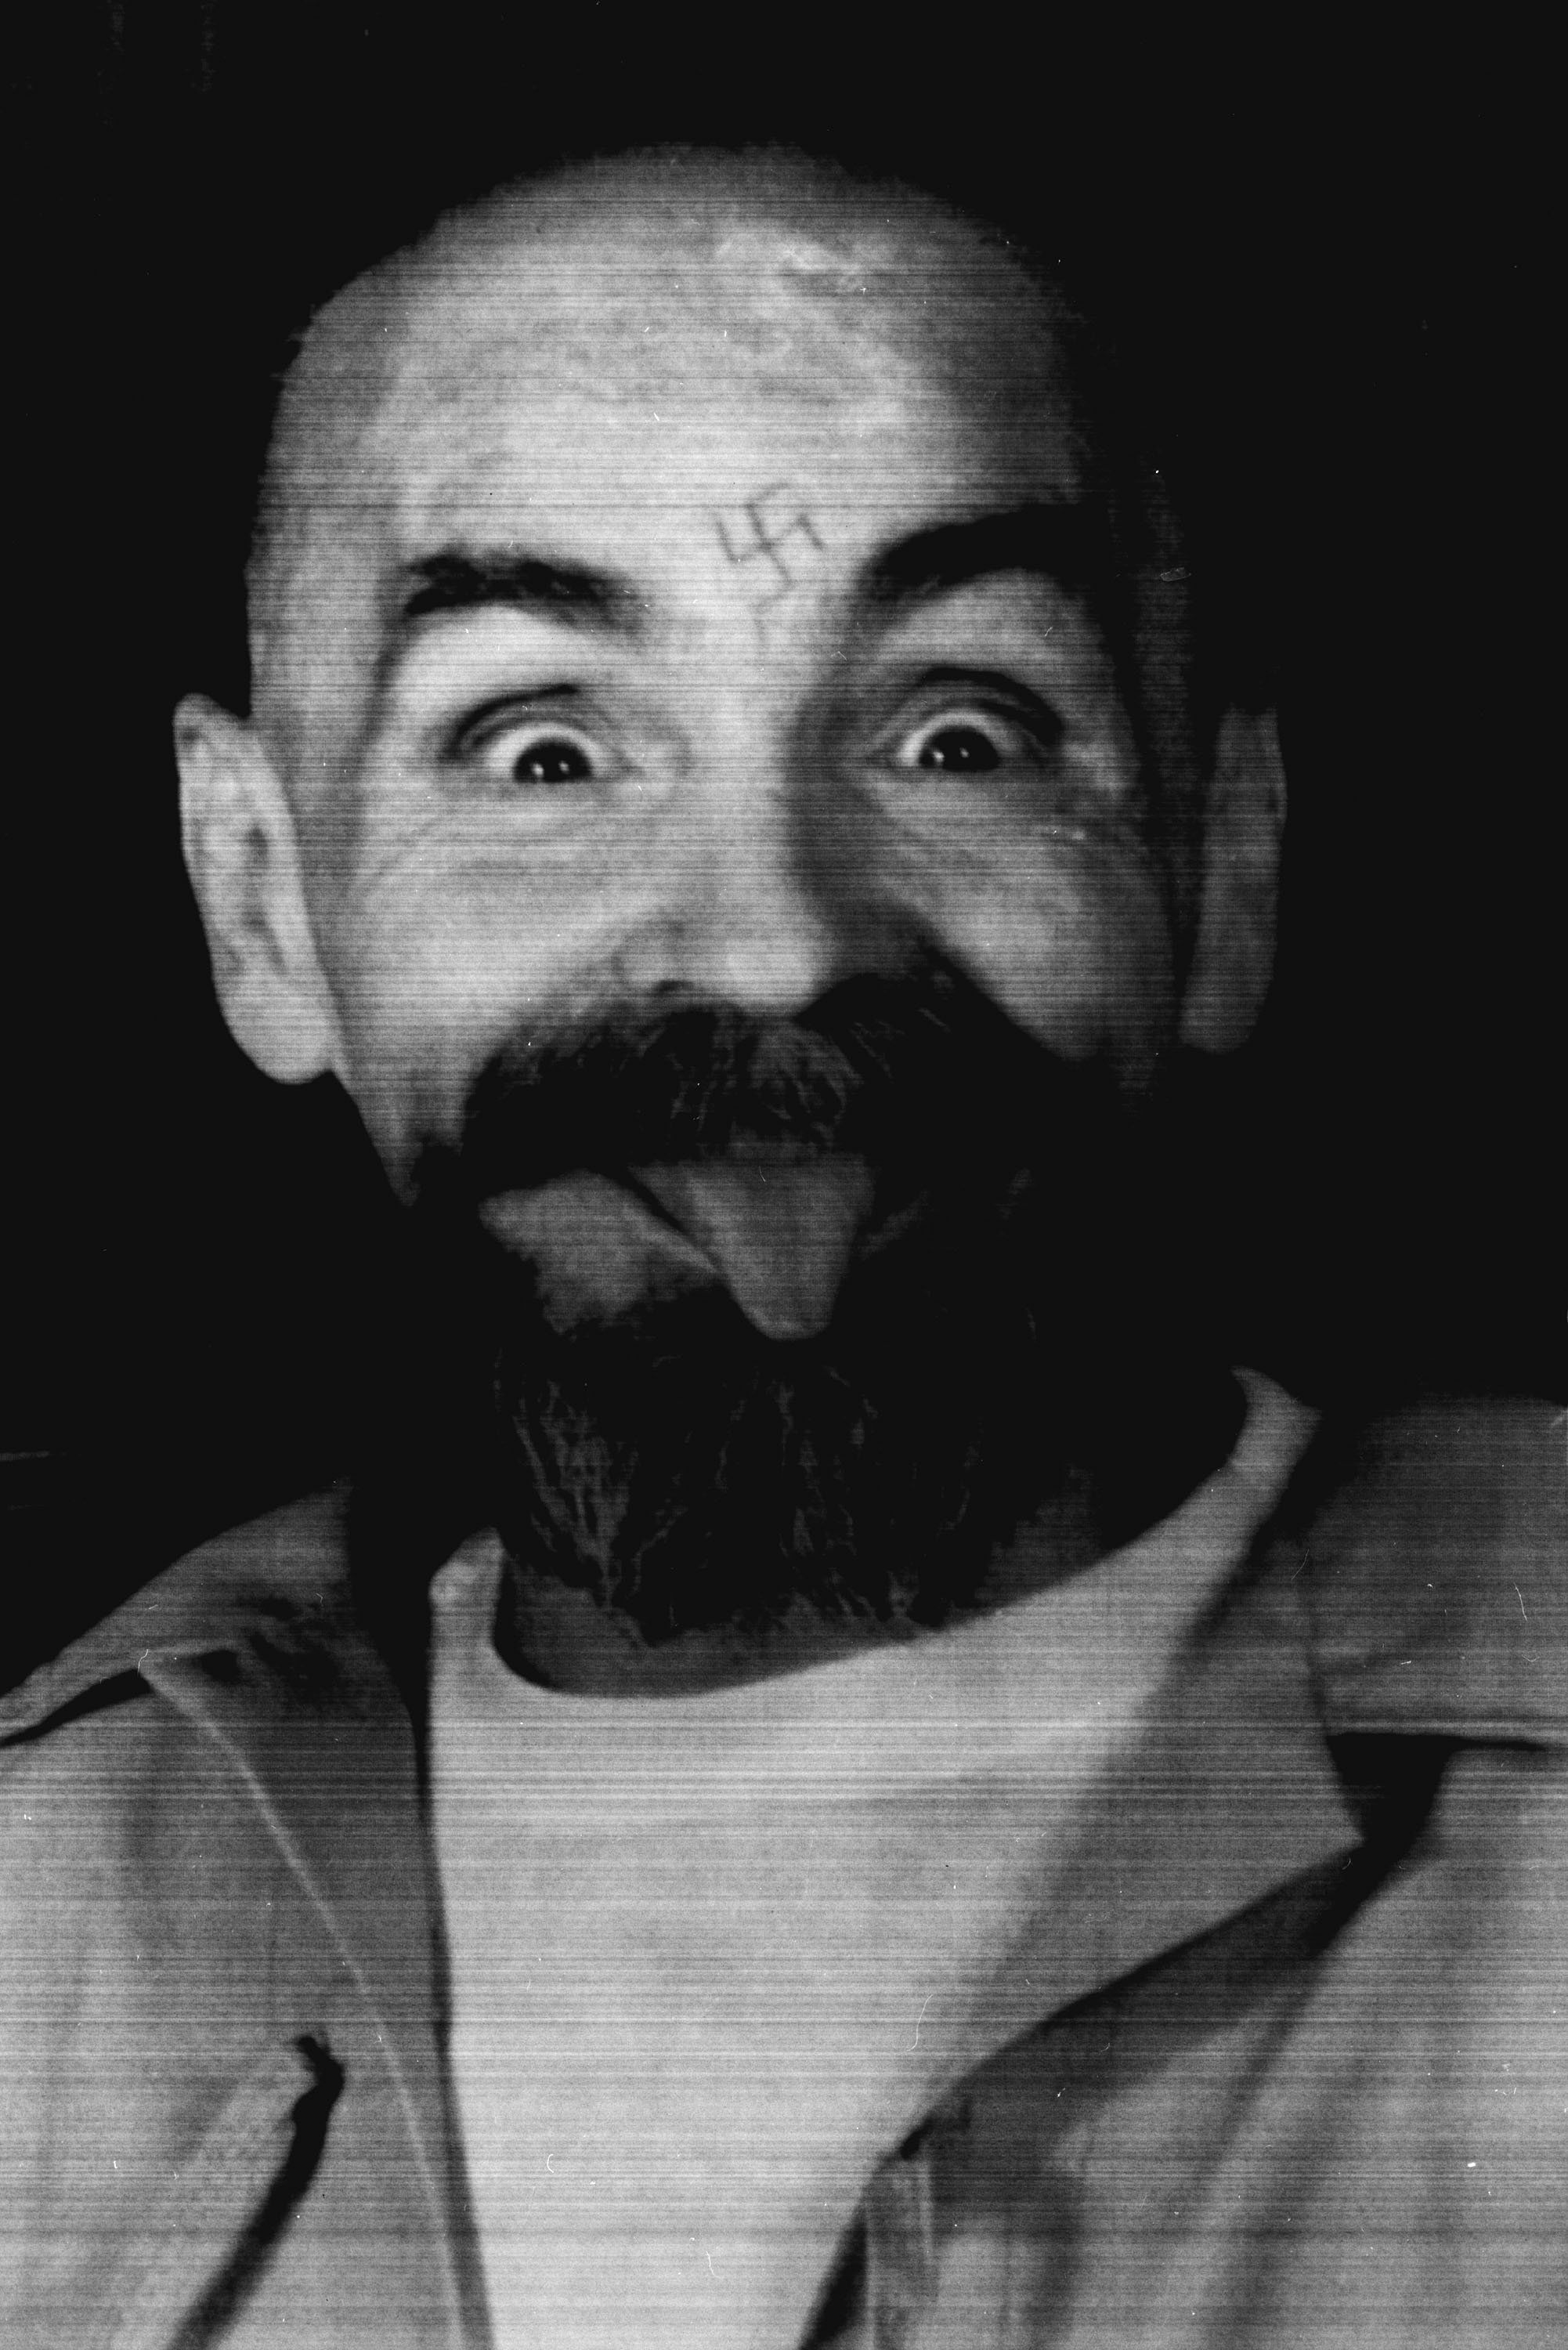 Charles Manson clowns around as he is led to his cell upon the conclusion of his exclusive interview with Reuters.  Charles Manson clowns around as he is led to his cell upon the conclusion of his exclusive interview with Reuters August 25, 1989. PP05070214 Reuters/Calvin Hom